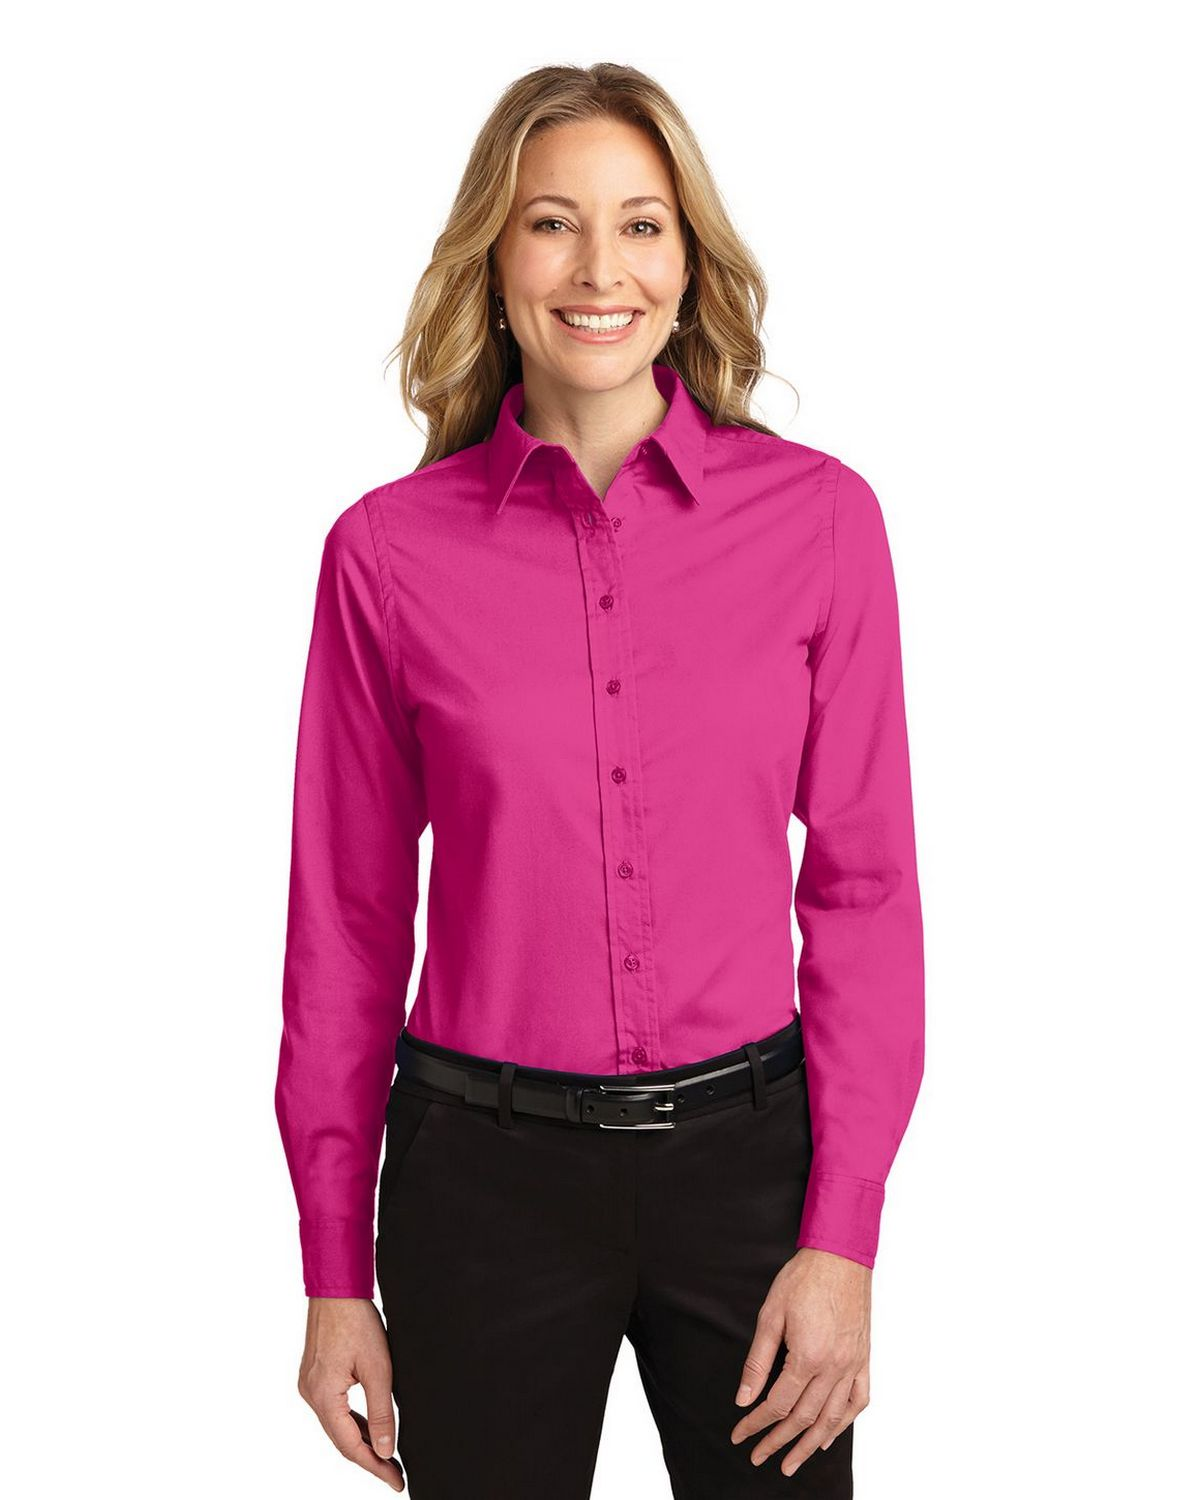 Port Authority L608 Women's Long Sleeve Easy Care Shirt - Tropical Pink - XS from Port Authority